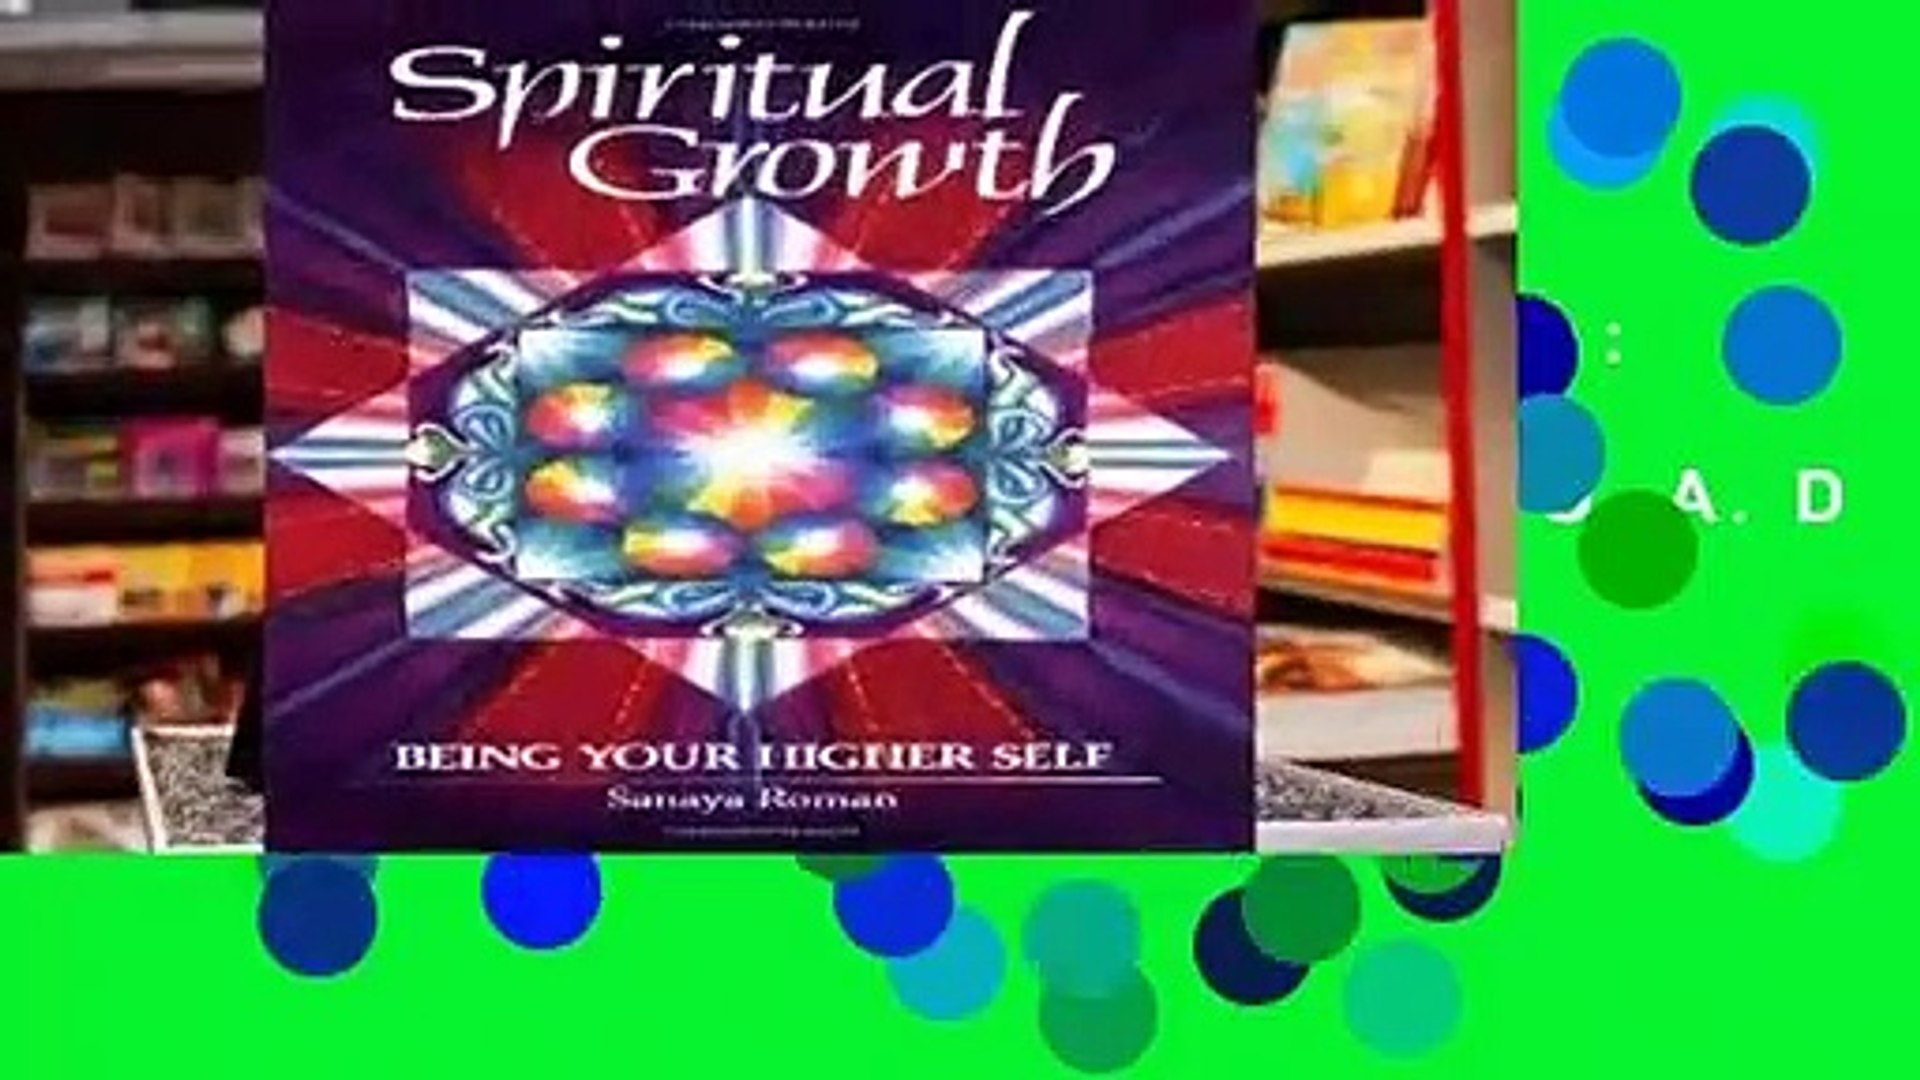 R.E.A.D Spiritual Growth: Being Your Higher Self (Earth life) D.O.W.N.L.O.A.D